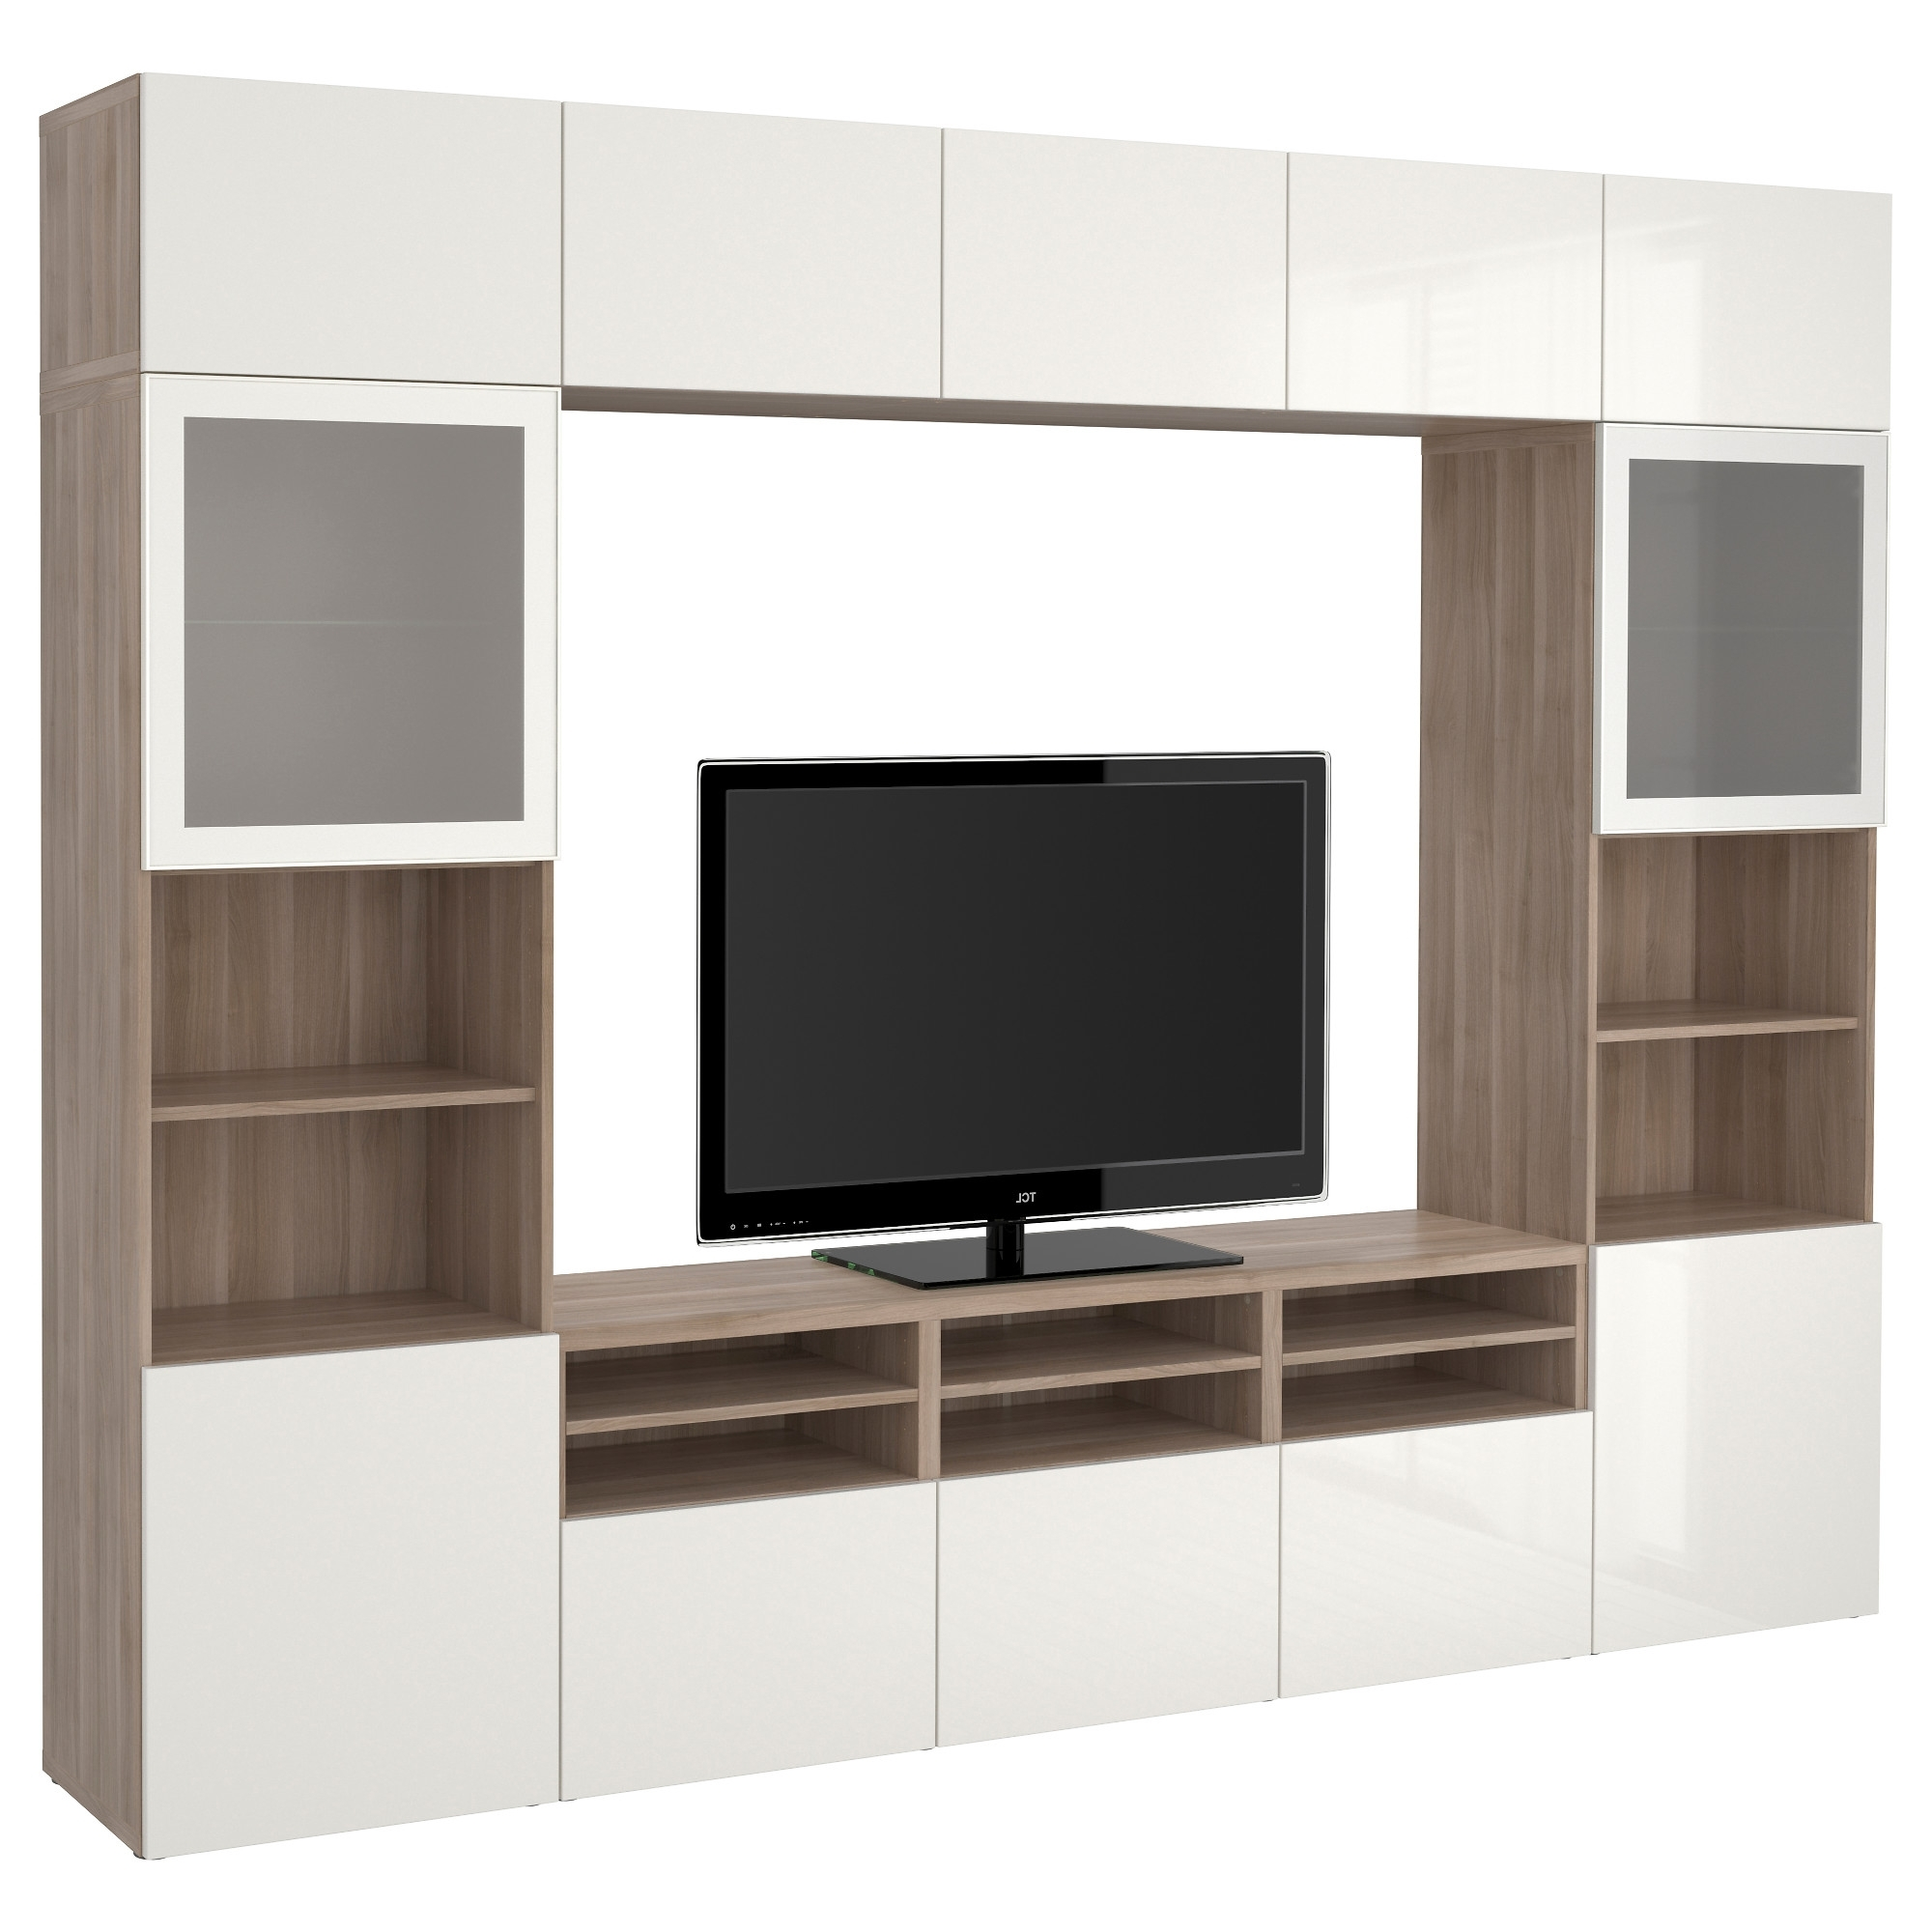 Tv Storage Units Within Current Tomnäs Tv Storage Unit Ikea Wall Units Hi Res Wallpaper Images (View 10 of 15)